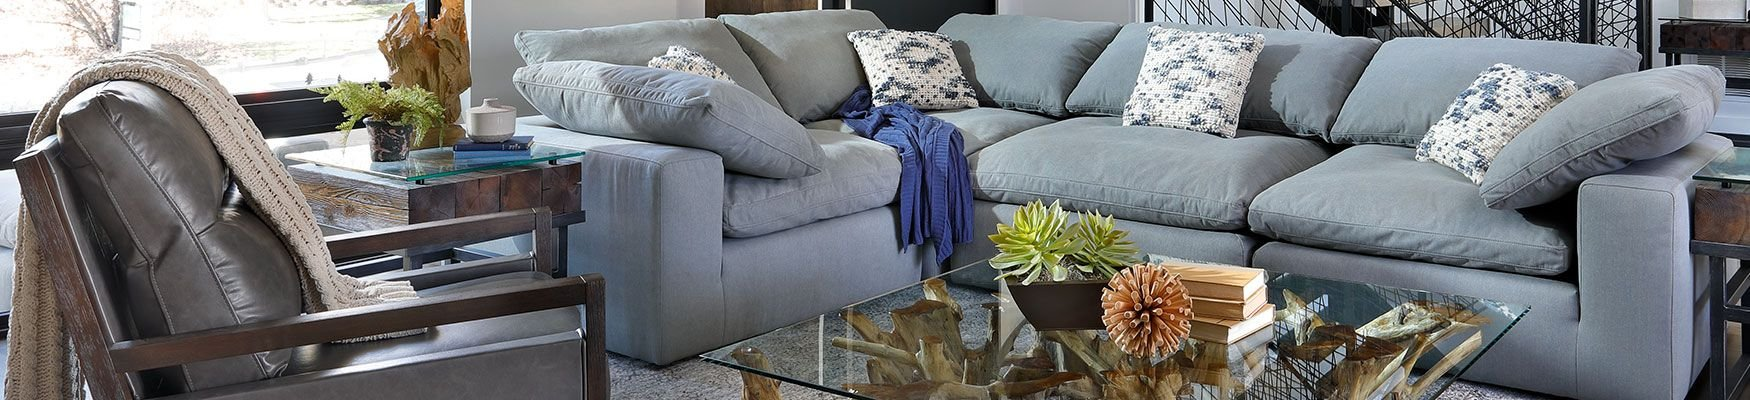 Shop Upholstery Furniture